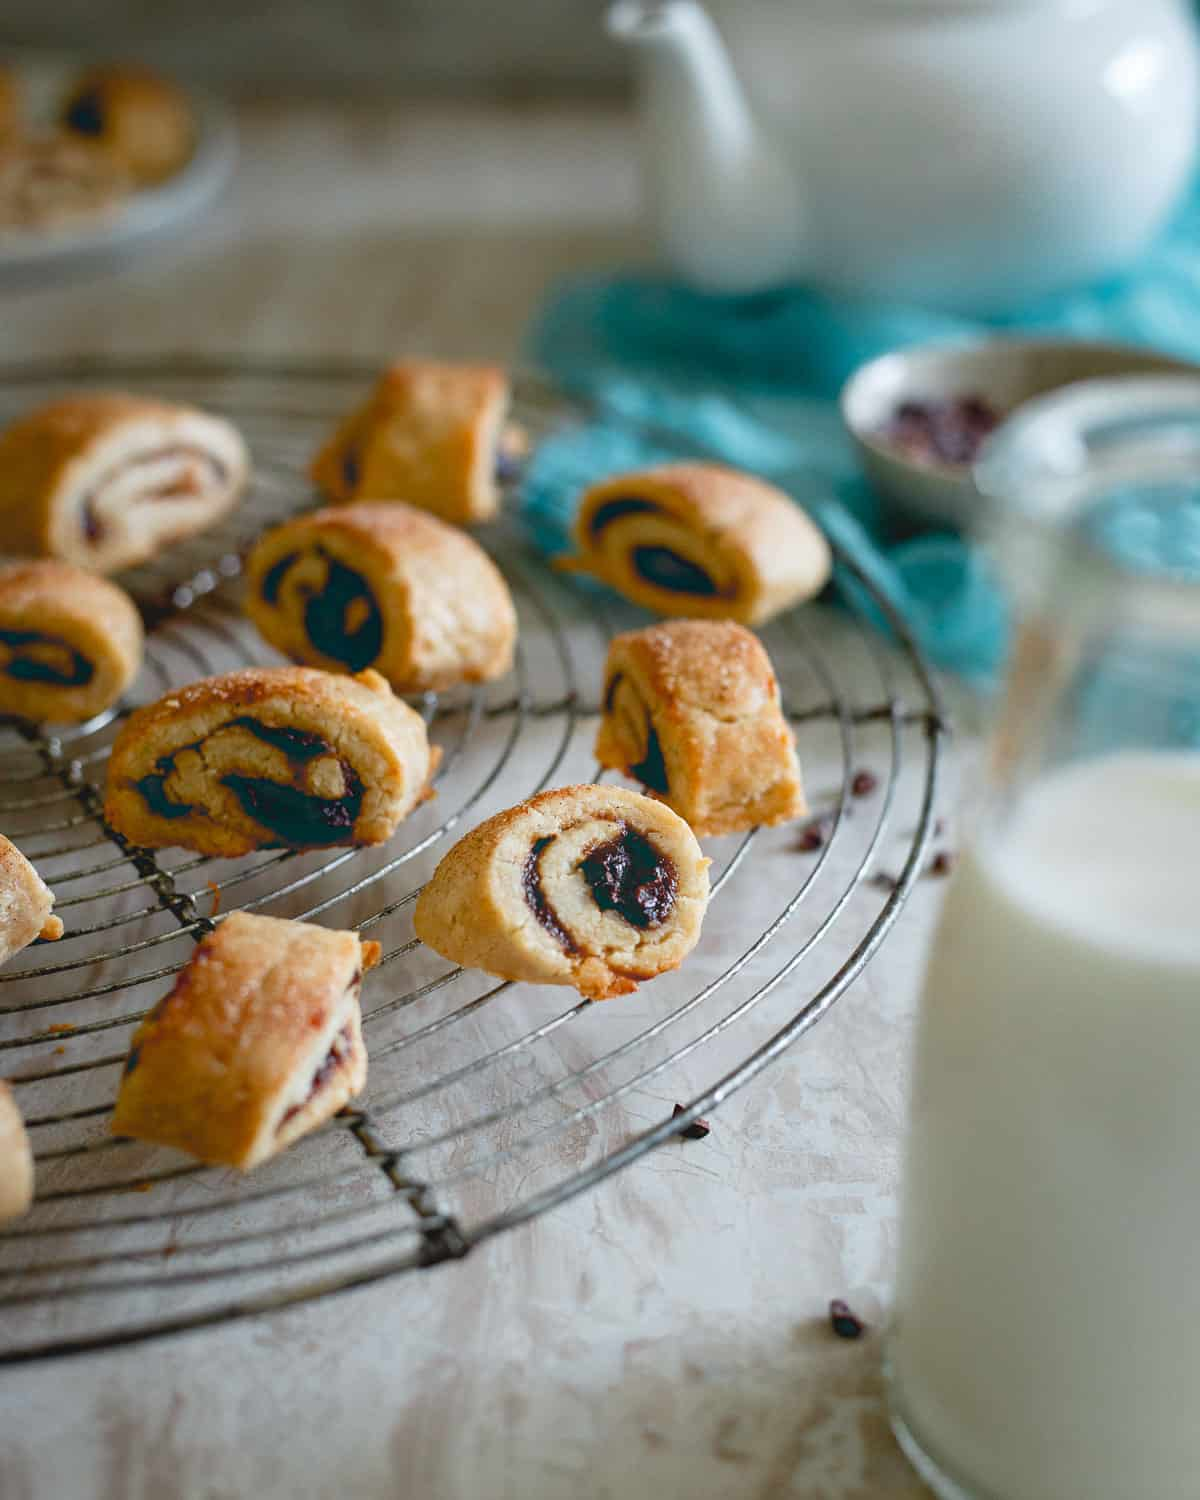 Chewy, buttery soft rugelach are made gluten free and festive for the season with an apple butter filling.